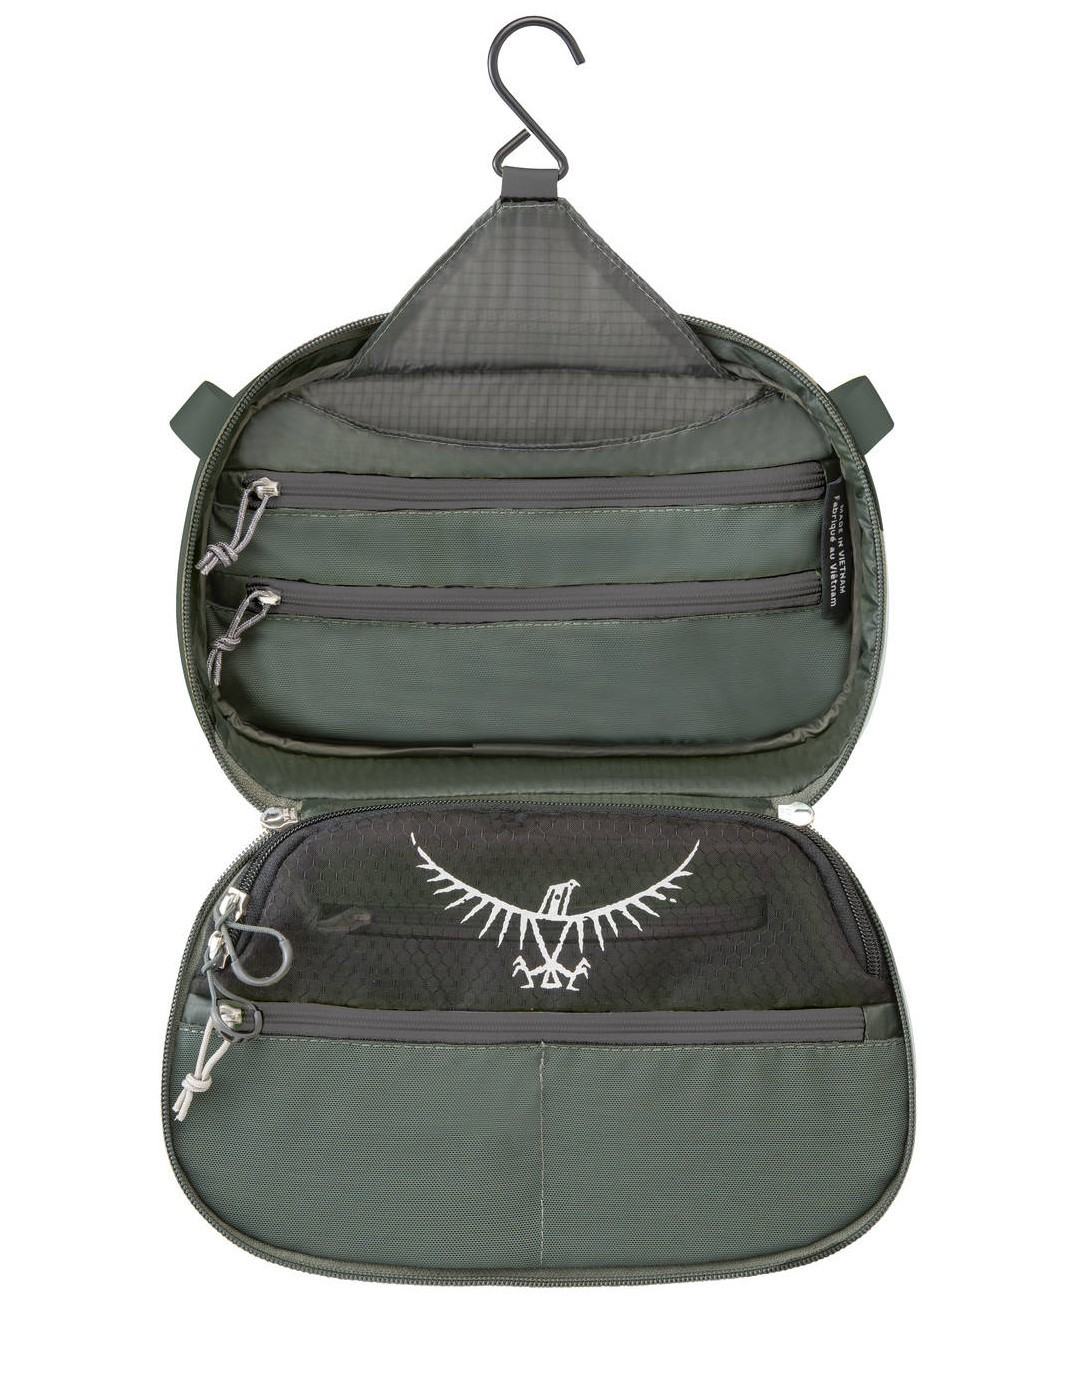 Косметички Косметичка Osprey WashBag Cassette Shadow Gray UL_Washbag_Cassette_F17_Side2_Shadow_Grey_web.jpg